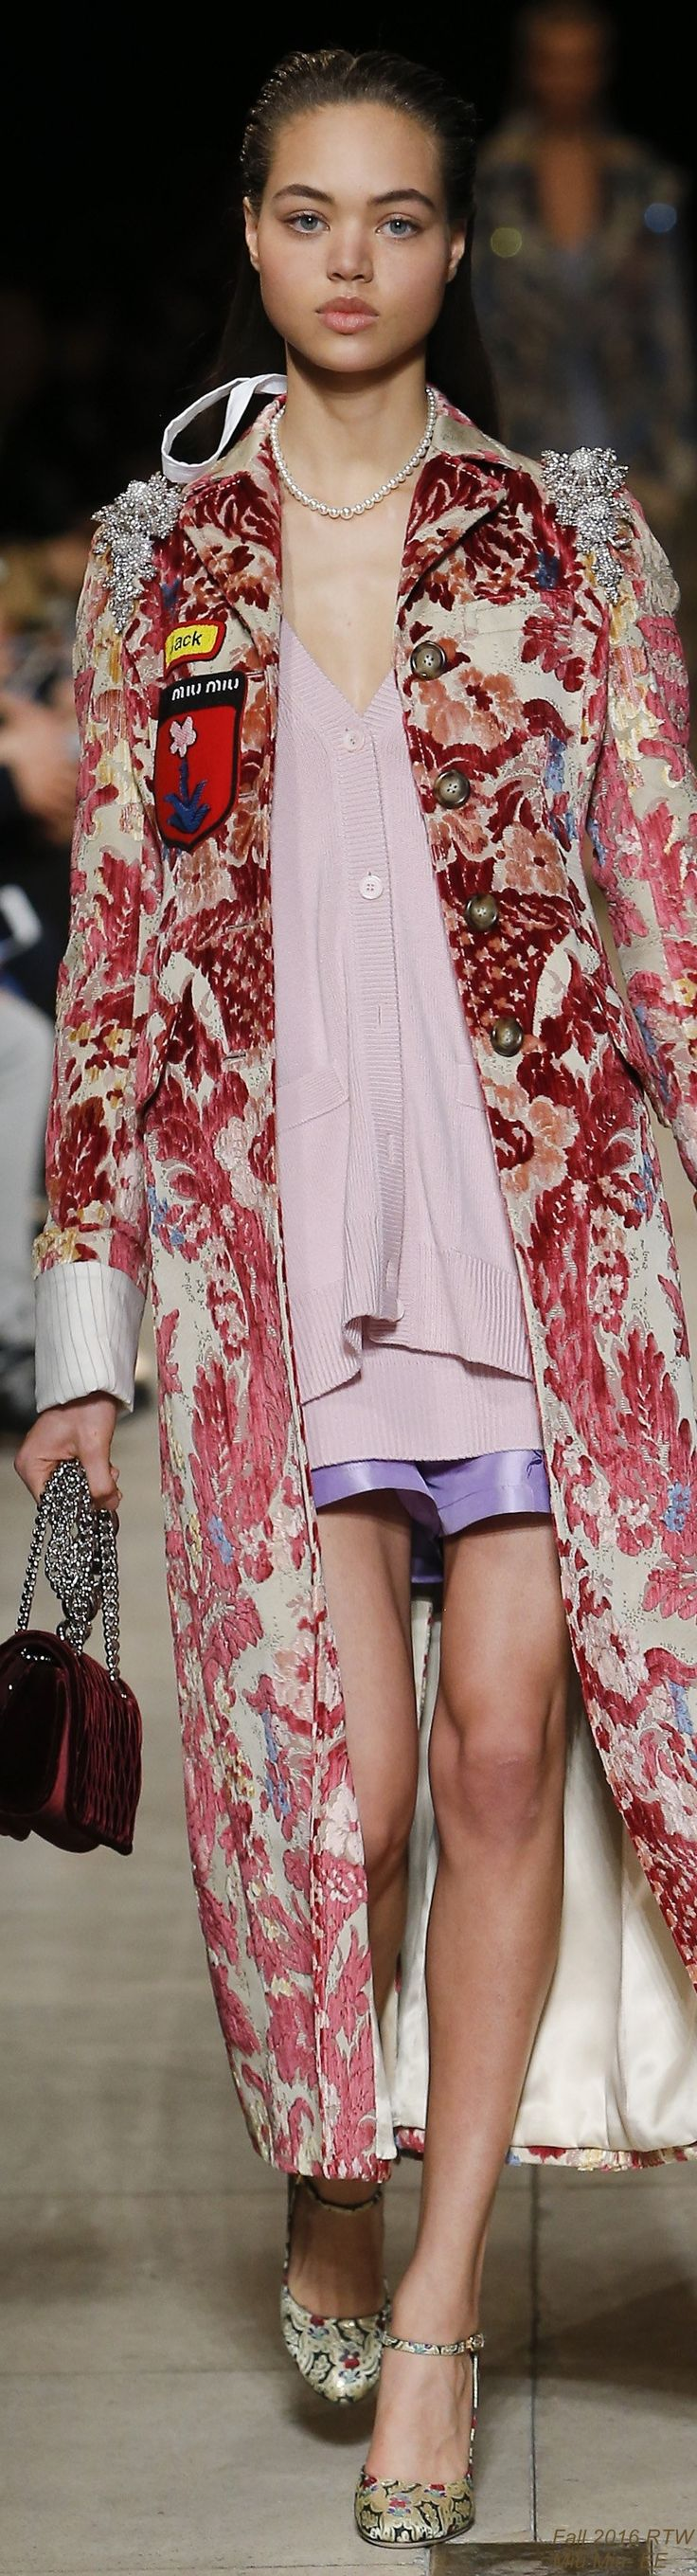 Fall 2016 Ready-to-Wear Miu Miu - EE